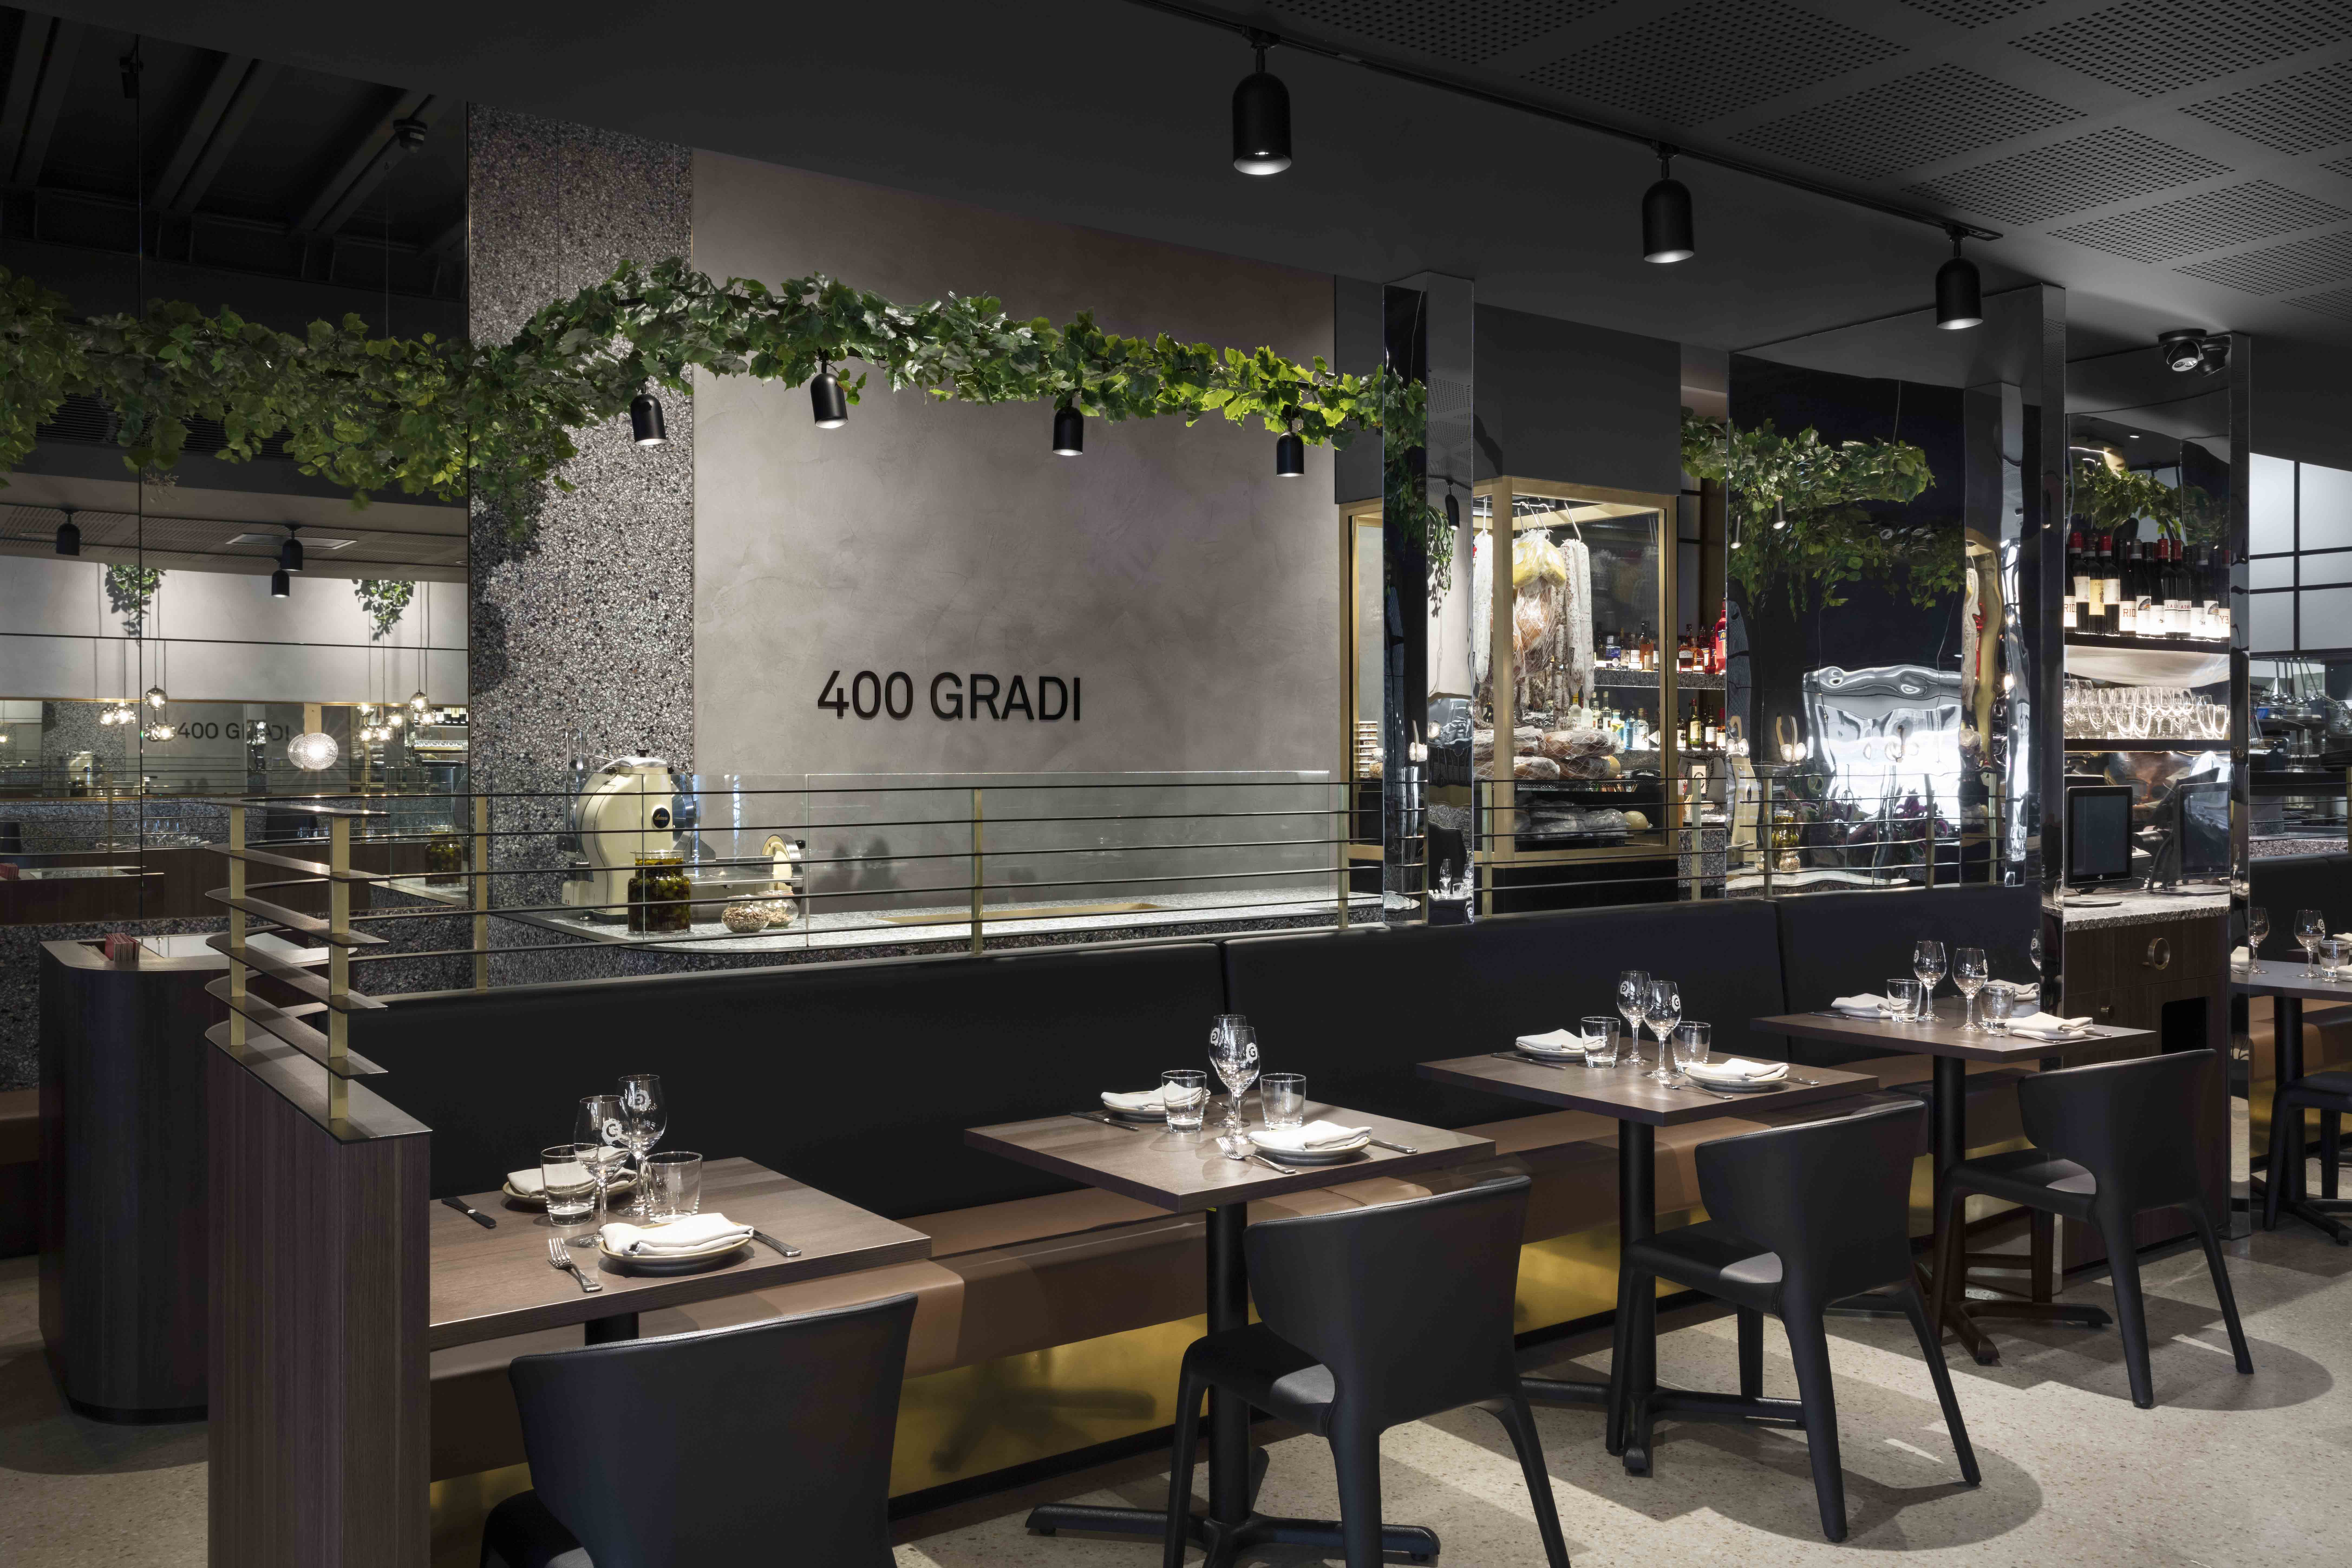 03_DEAN_DYSON_ARCHITECTS_HIGHRES_400_GRADI_SALUMI_AND_DINING